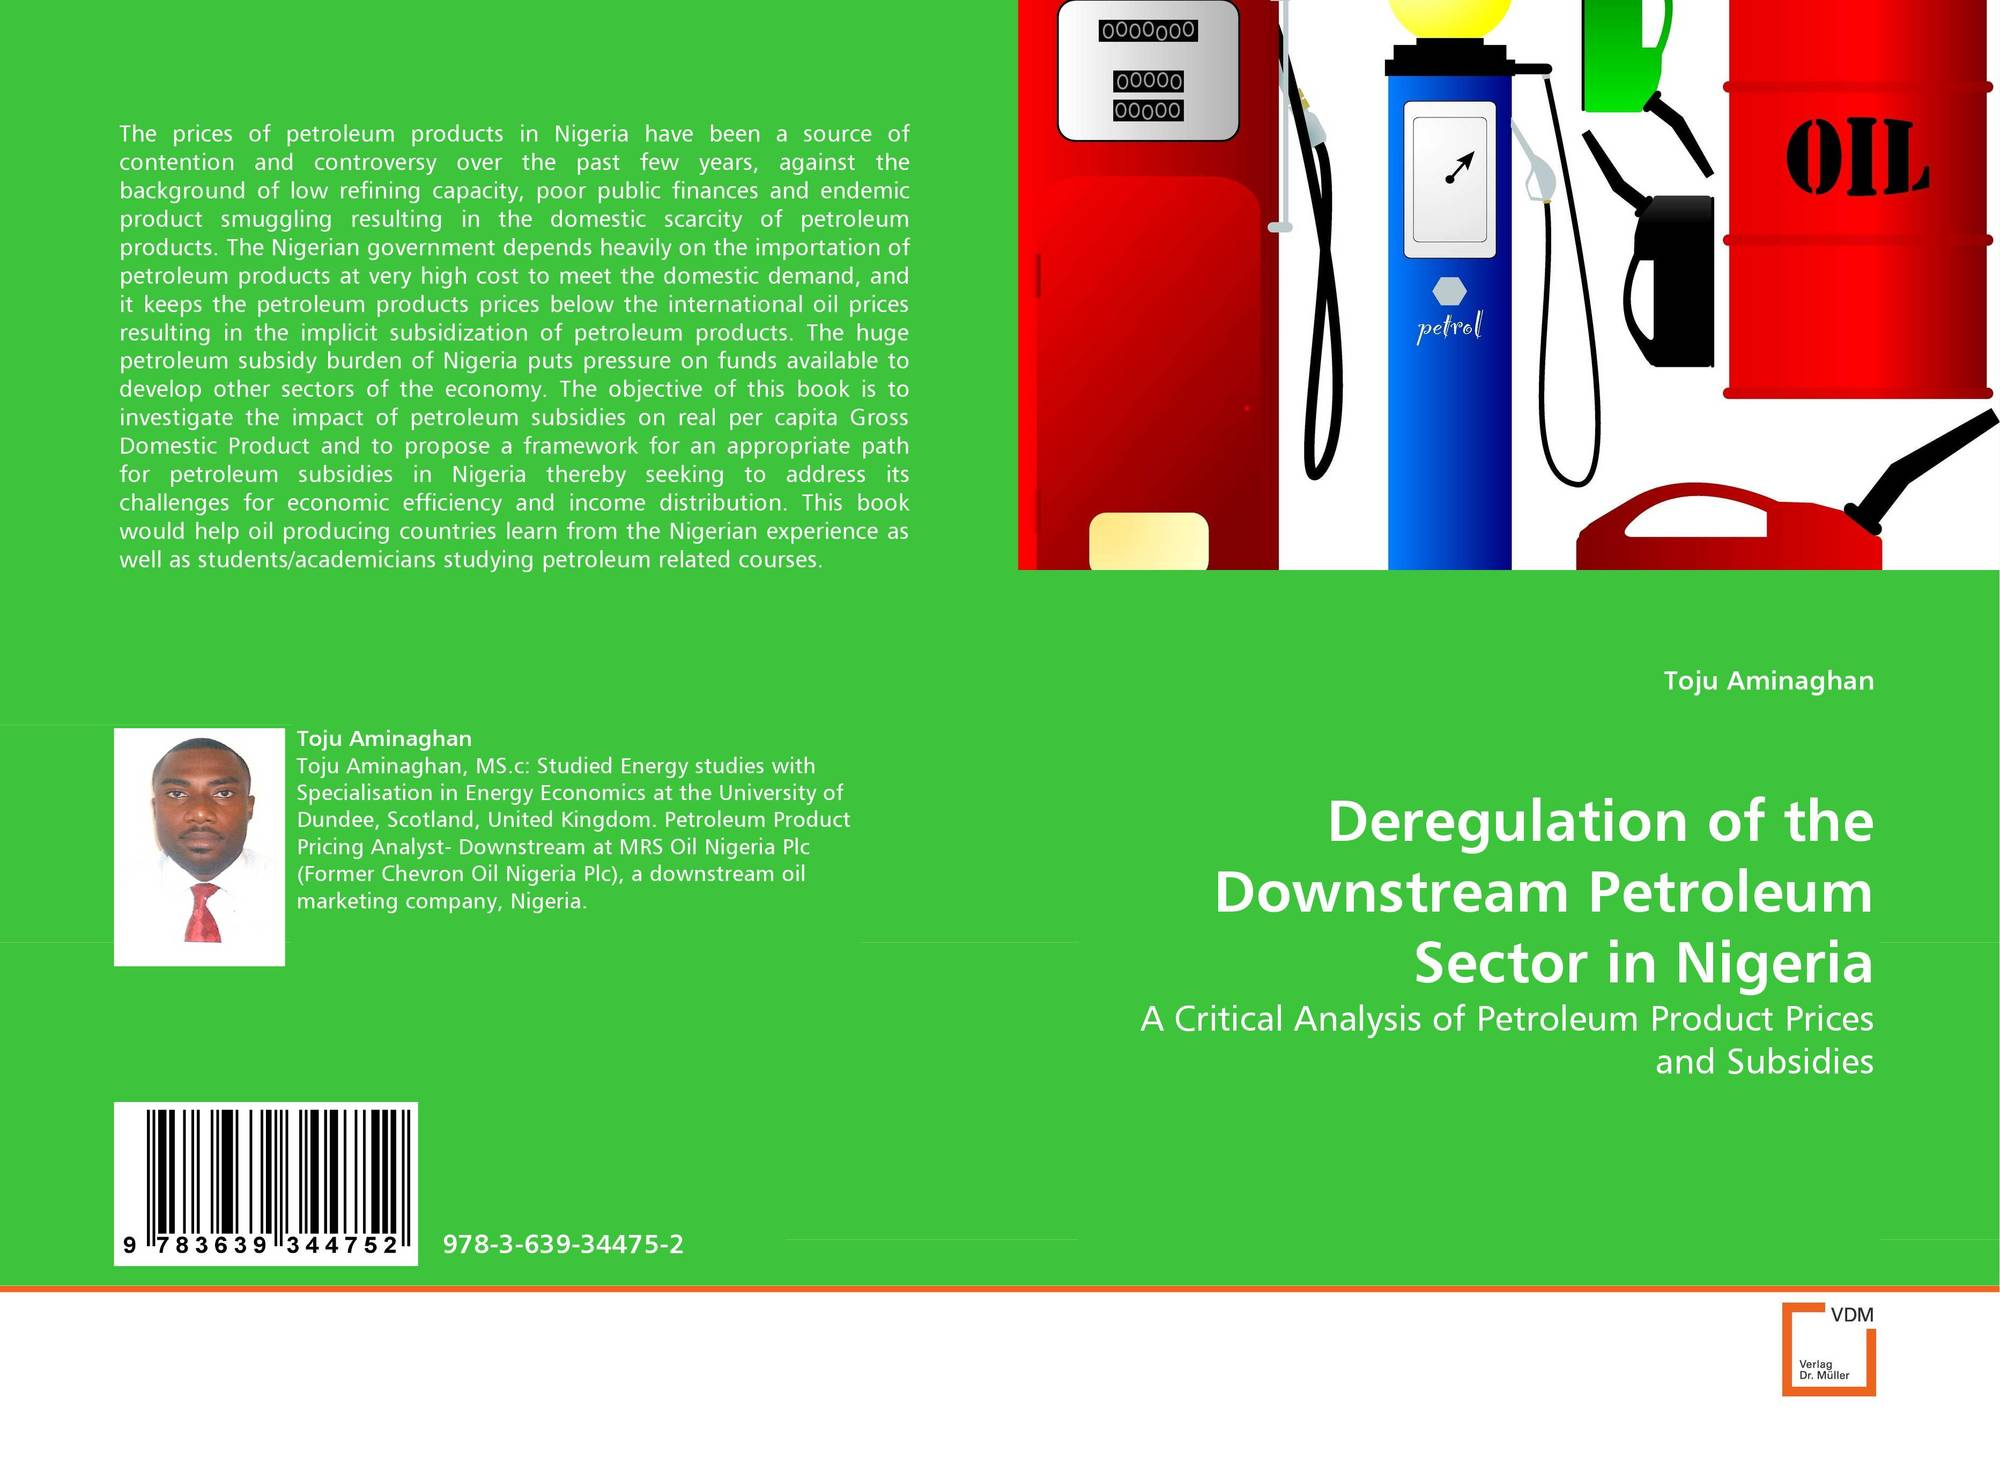 effects of deregulation of the downstream sector of the petroleum industry Despite successive attempts to effectively manage nigeria's downstream oil   industry that led to subsidy cuts and efforts to deregulate the downstream oil  sector  adedipe, b (2004) the impact of oil on nigeria's economic policy  formulation.